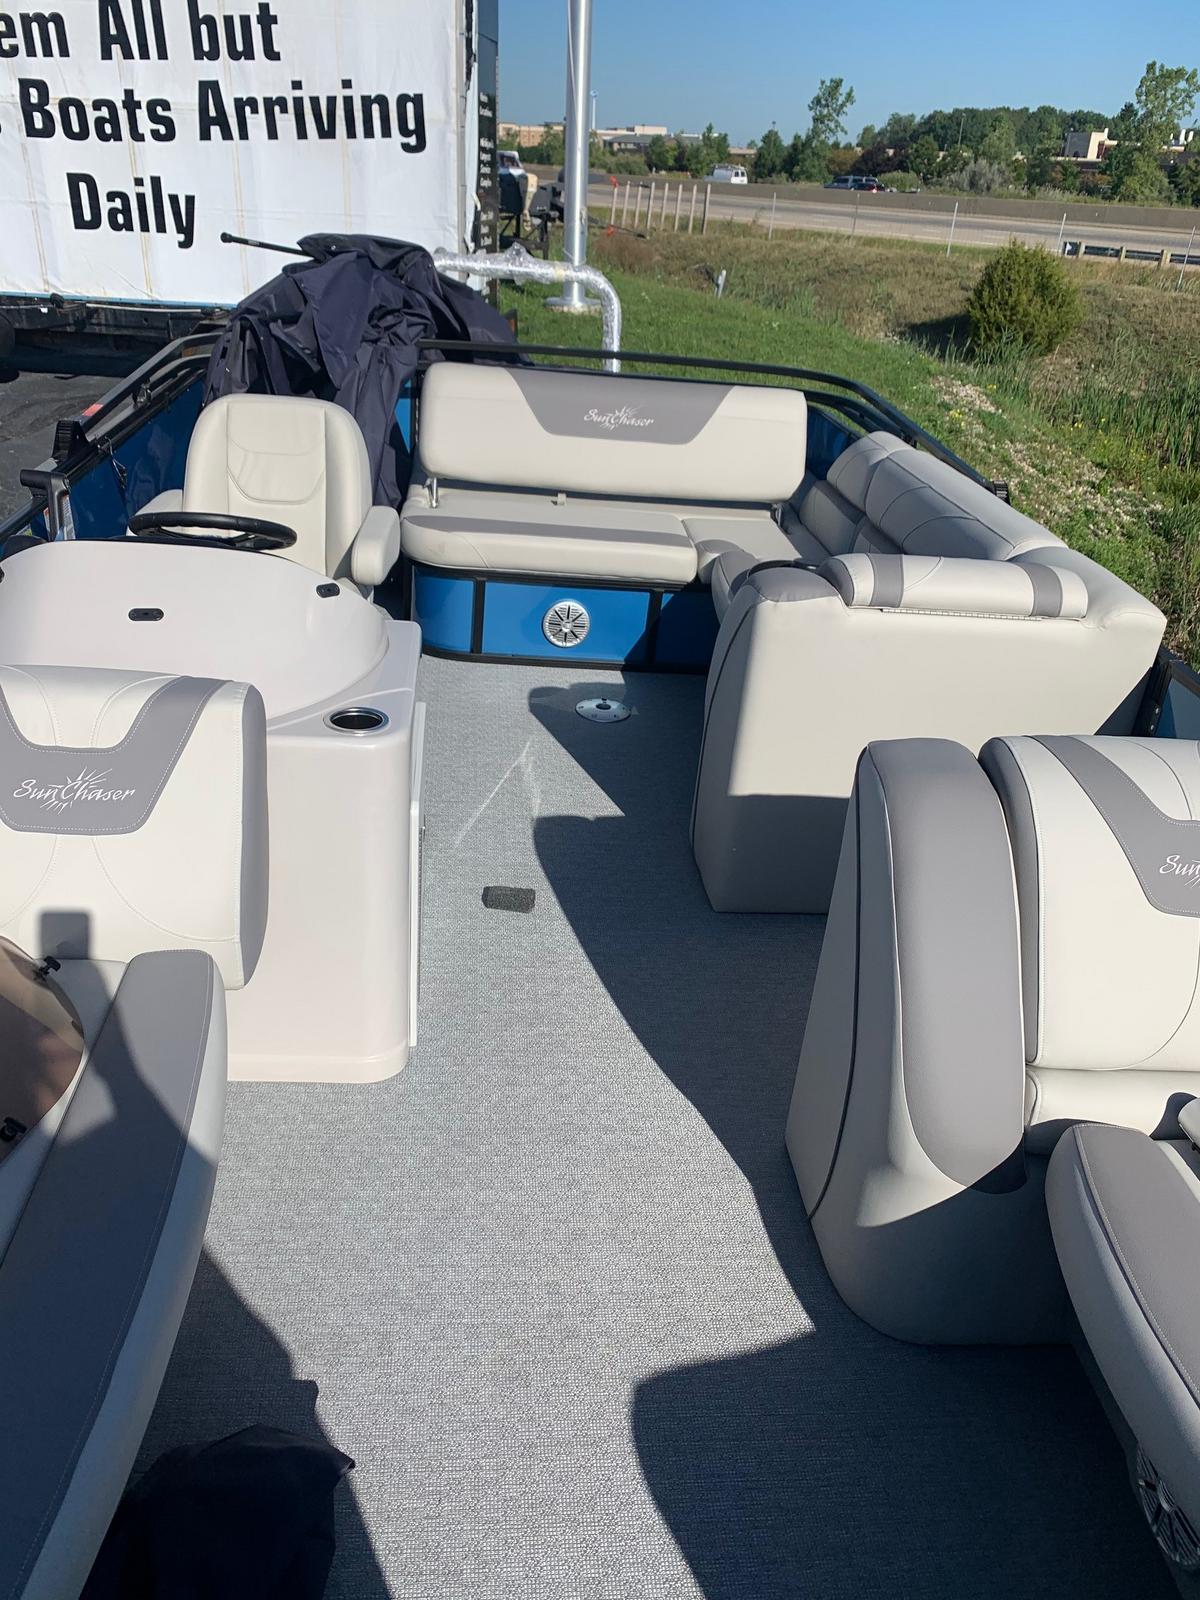 2020 SunChaser boat for sale, model of the boat is Geneva Cruise 22 SB & Image # 3 of 9